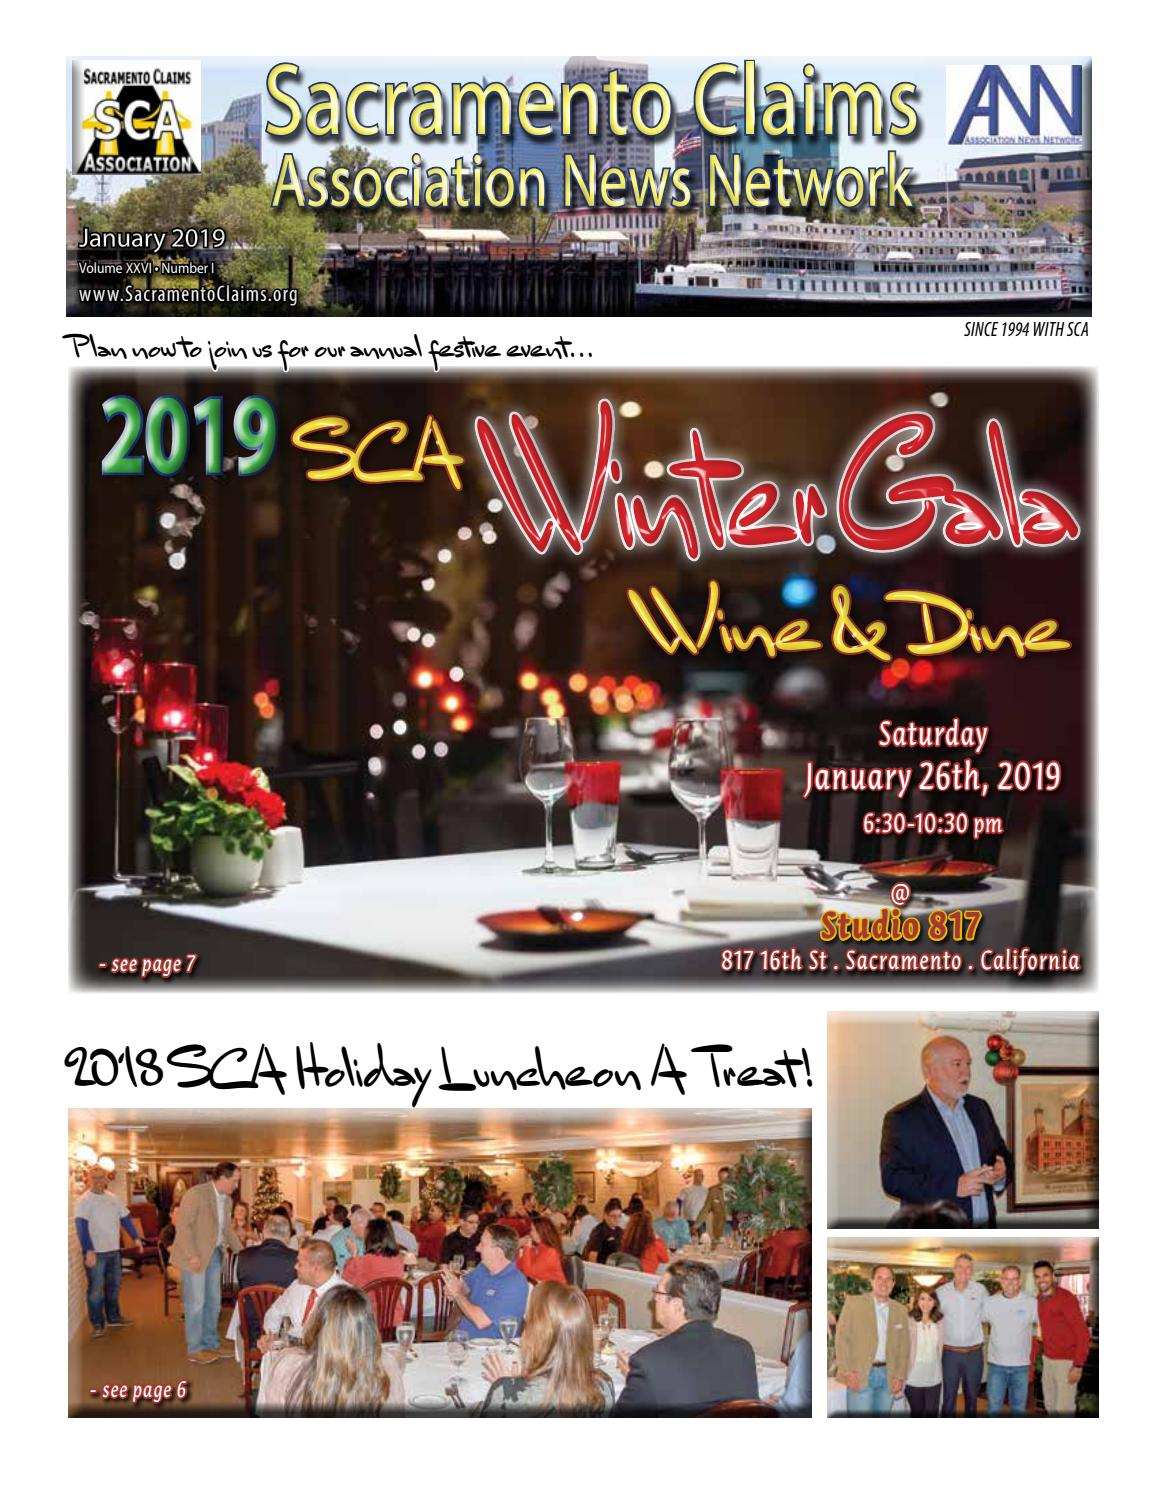 Sacramento Claims Association News Network - January 2019 by